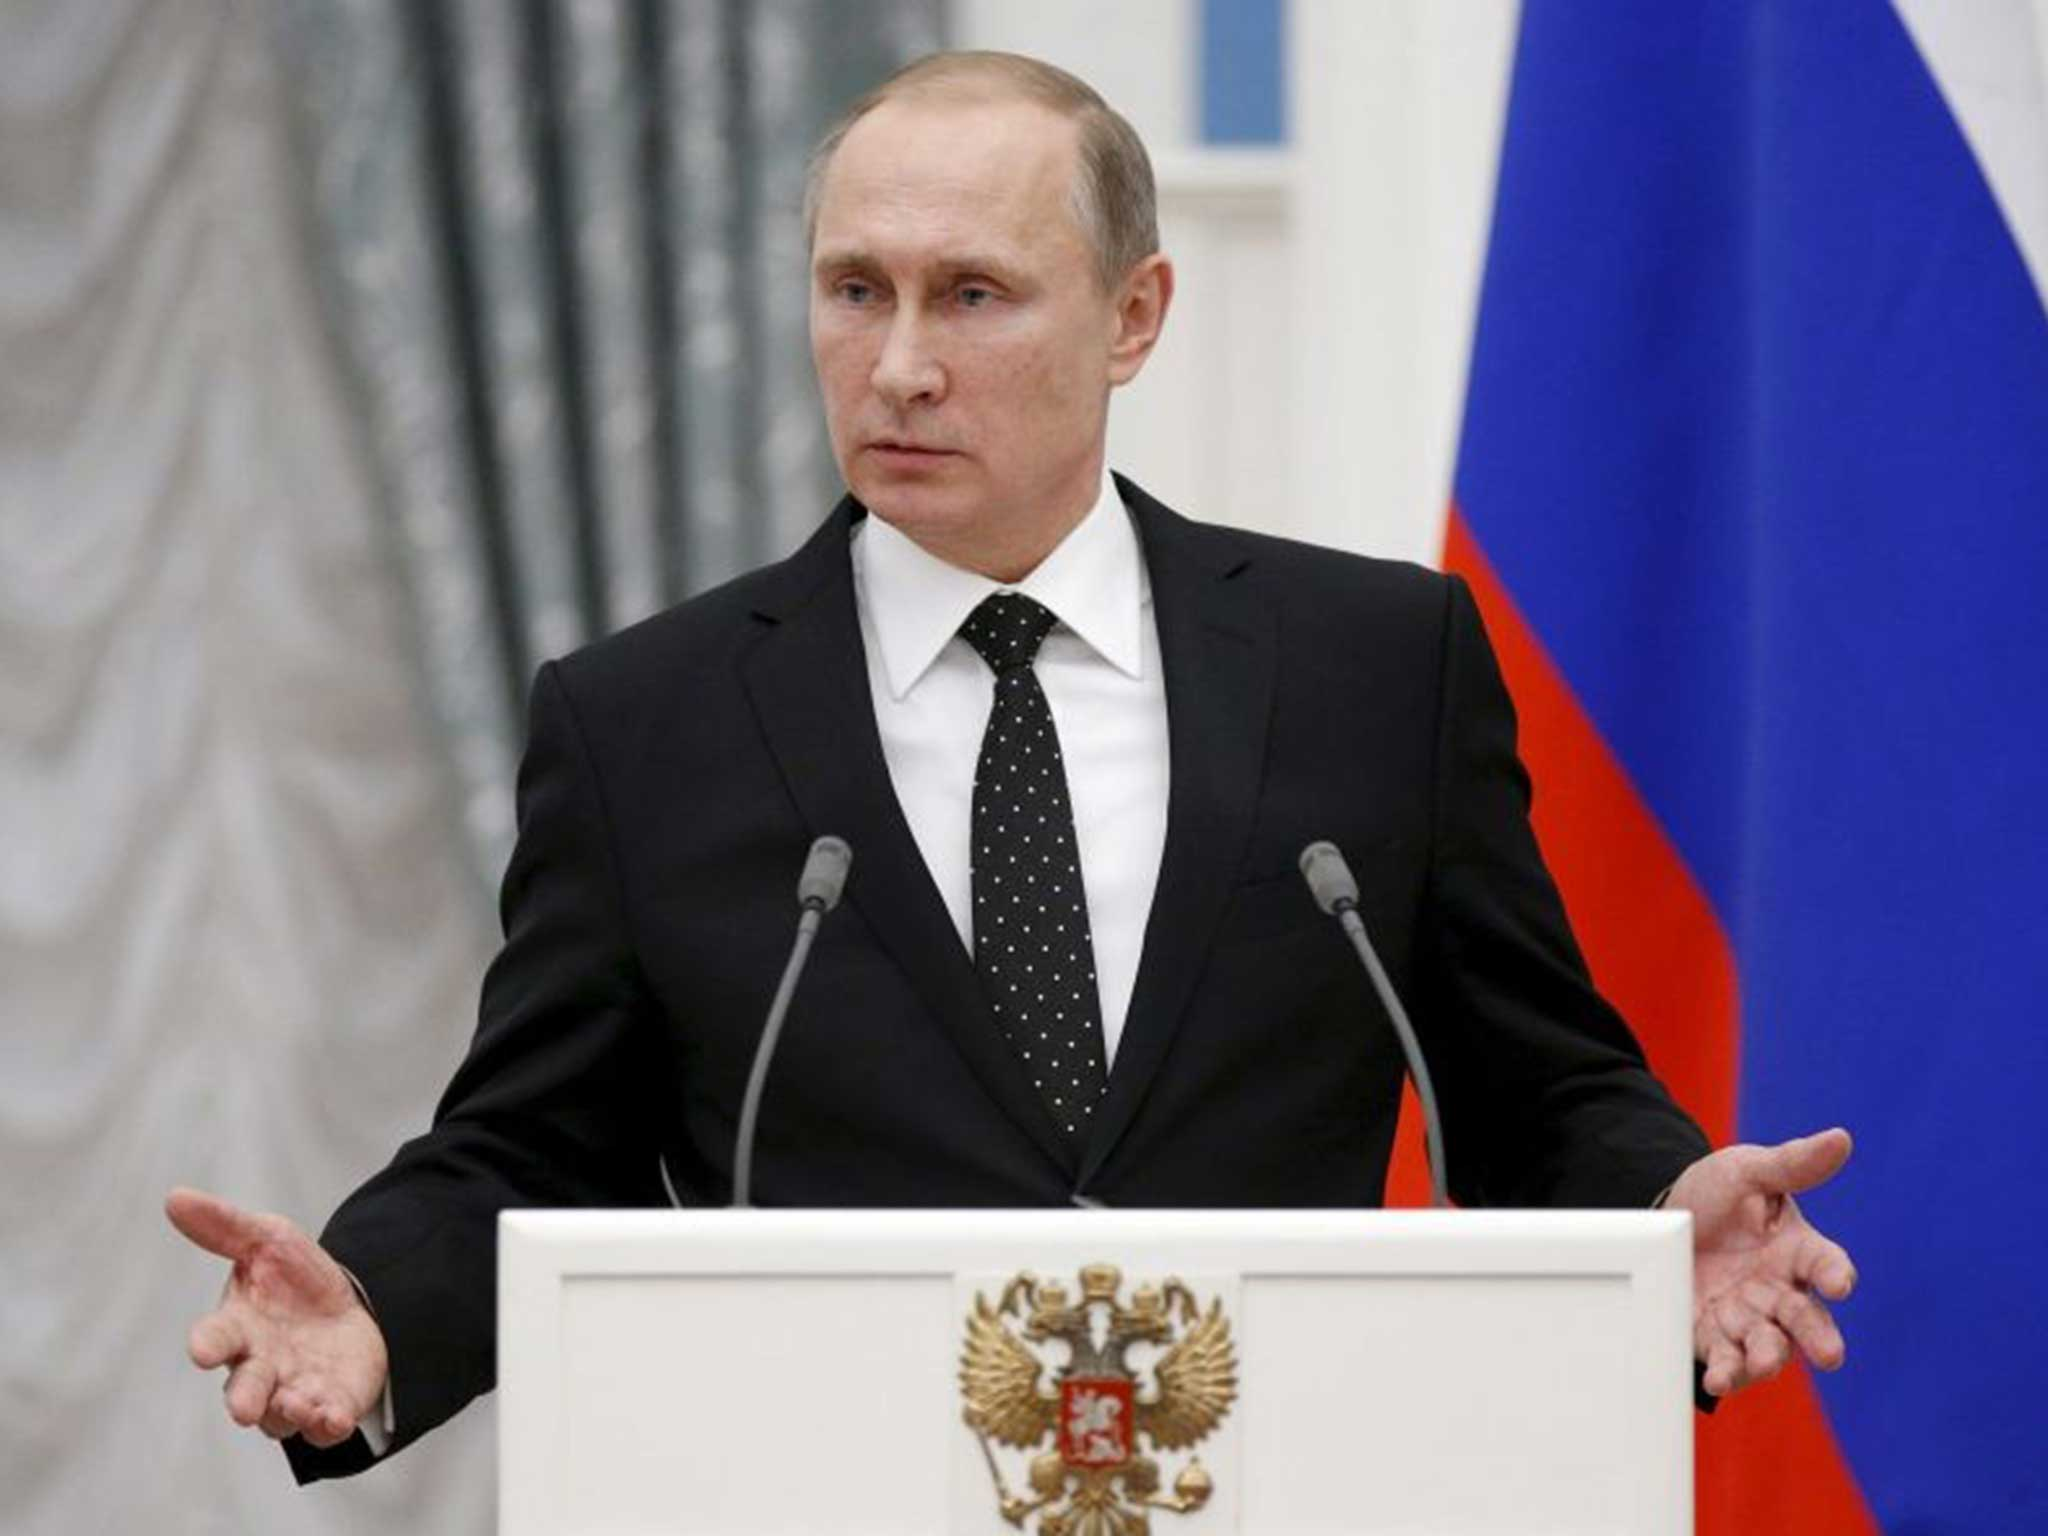 Immortal Vladimir Putin And The Other Conspiracies That Keep Russian President In Power